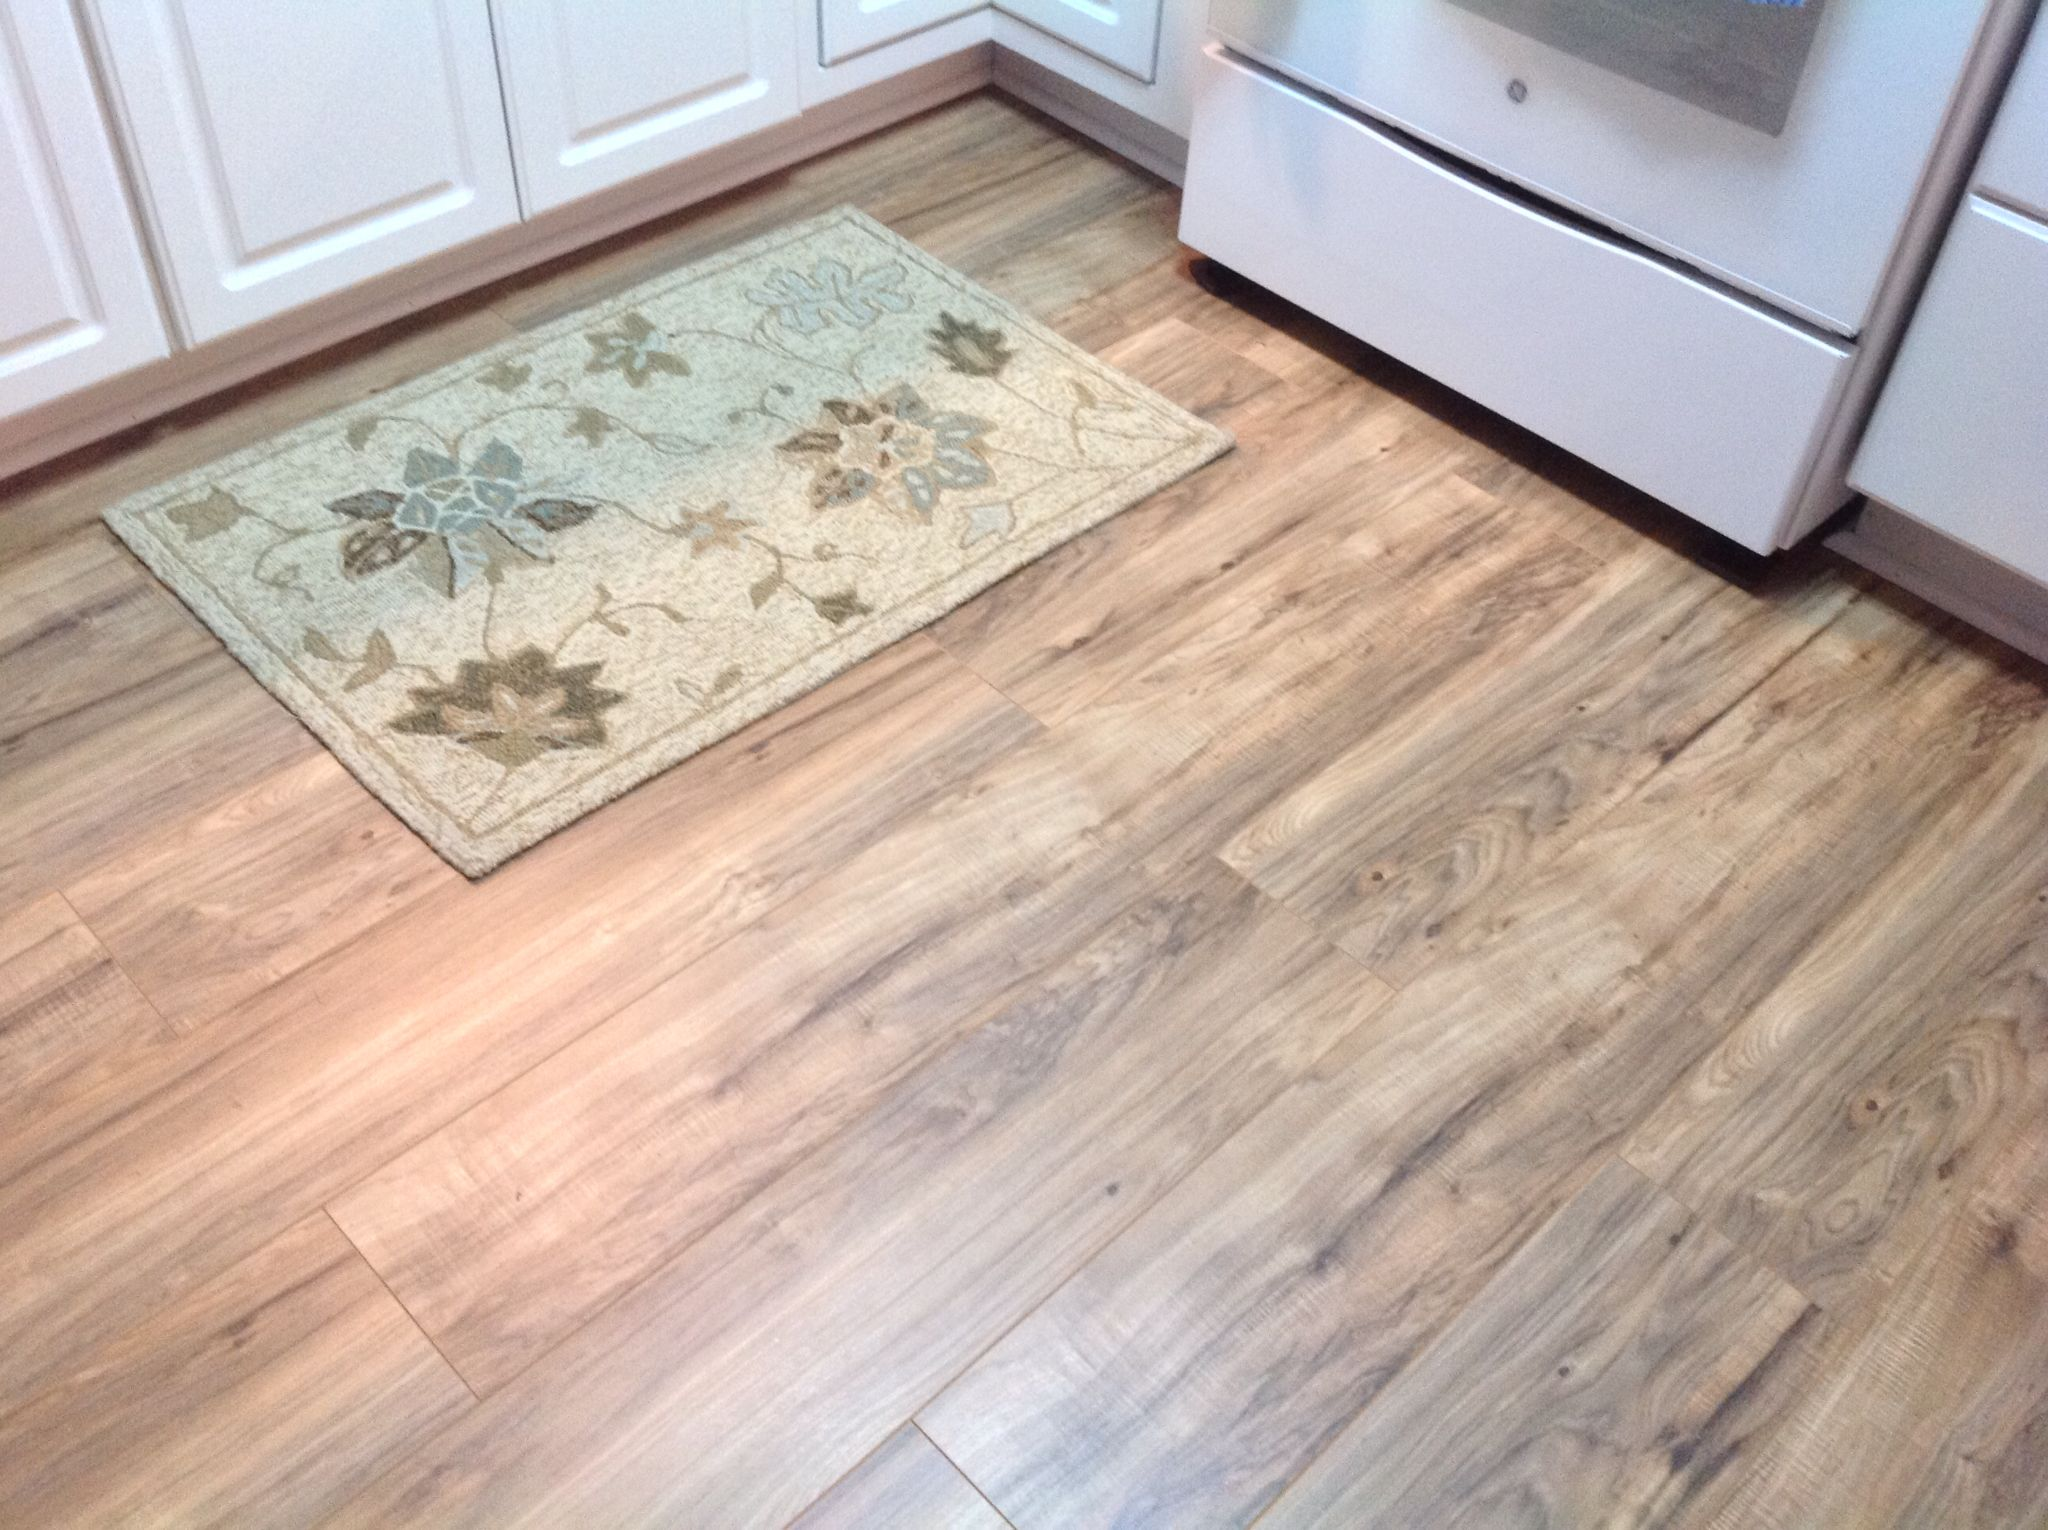 The Finished Kitchen Area Using Trafficmaster Lakes Pecan Laminate You Should Have 2 People Minimum To Install Best Method Is Work From Left